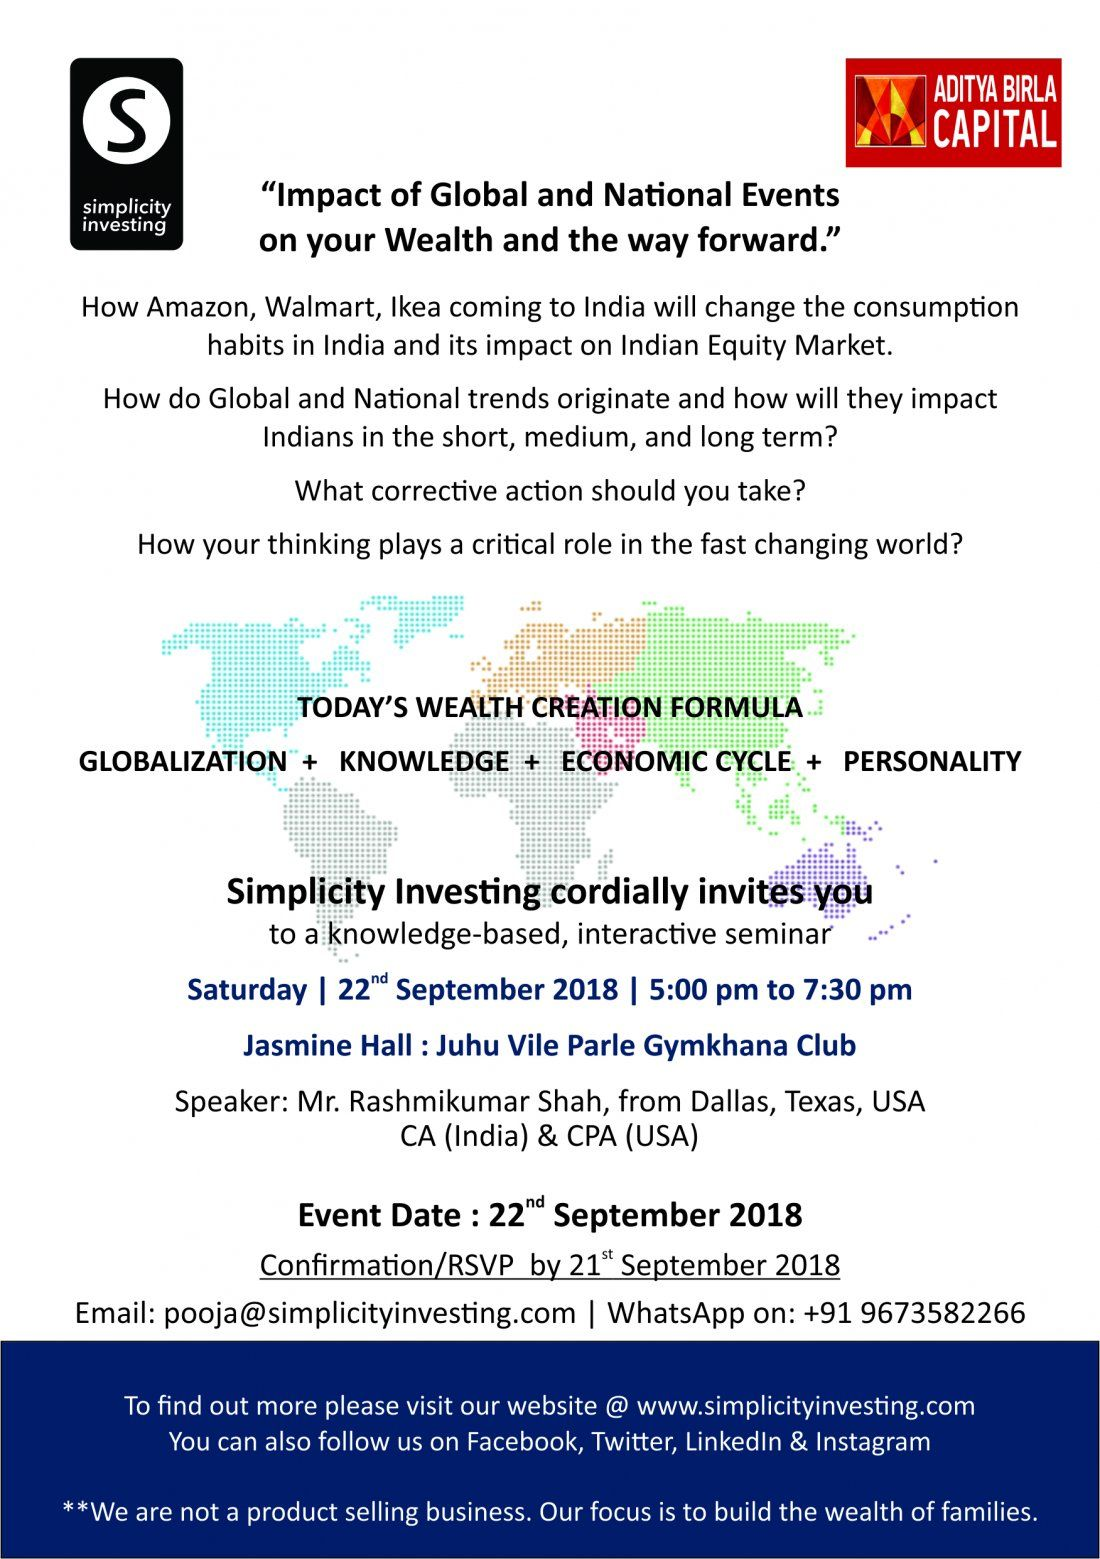 Todays Wealth Creation formula Impact of Global and National events on your Wealth.